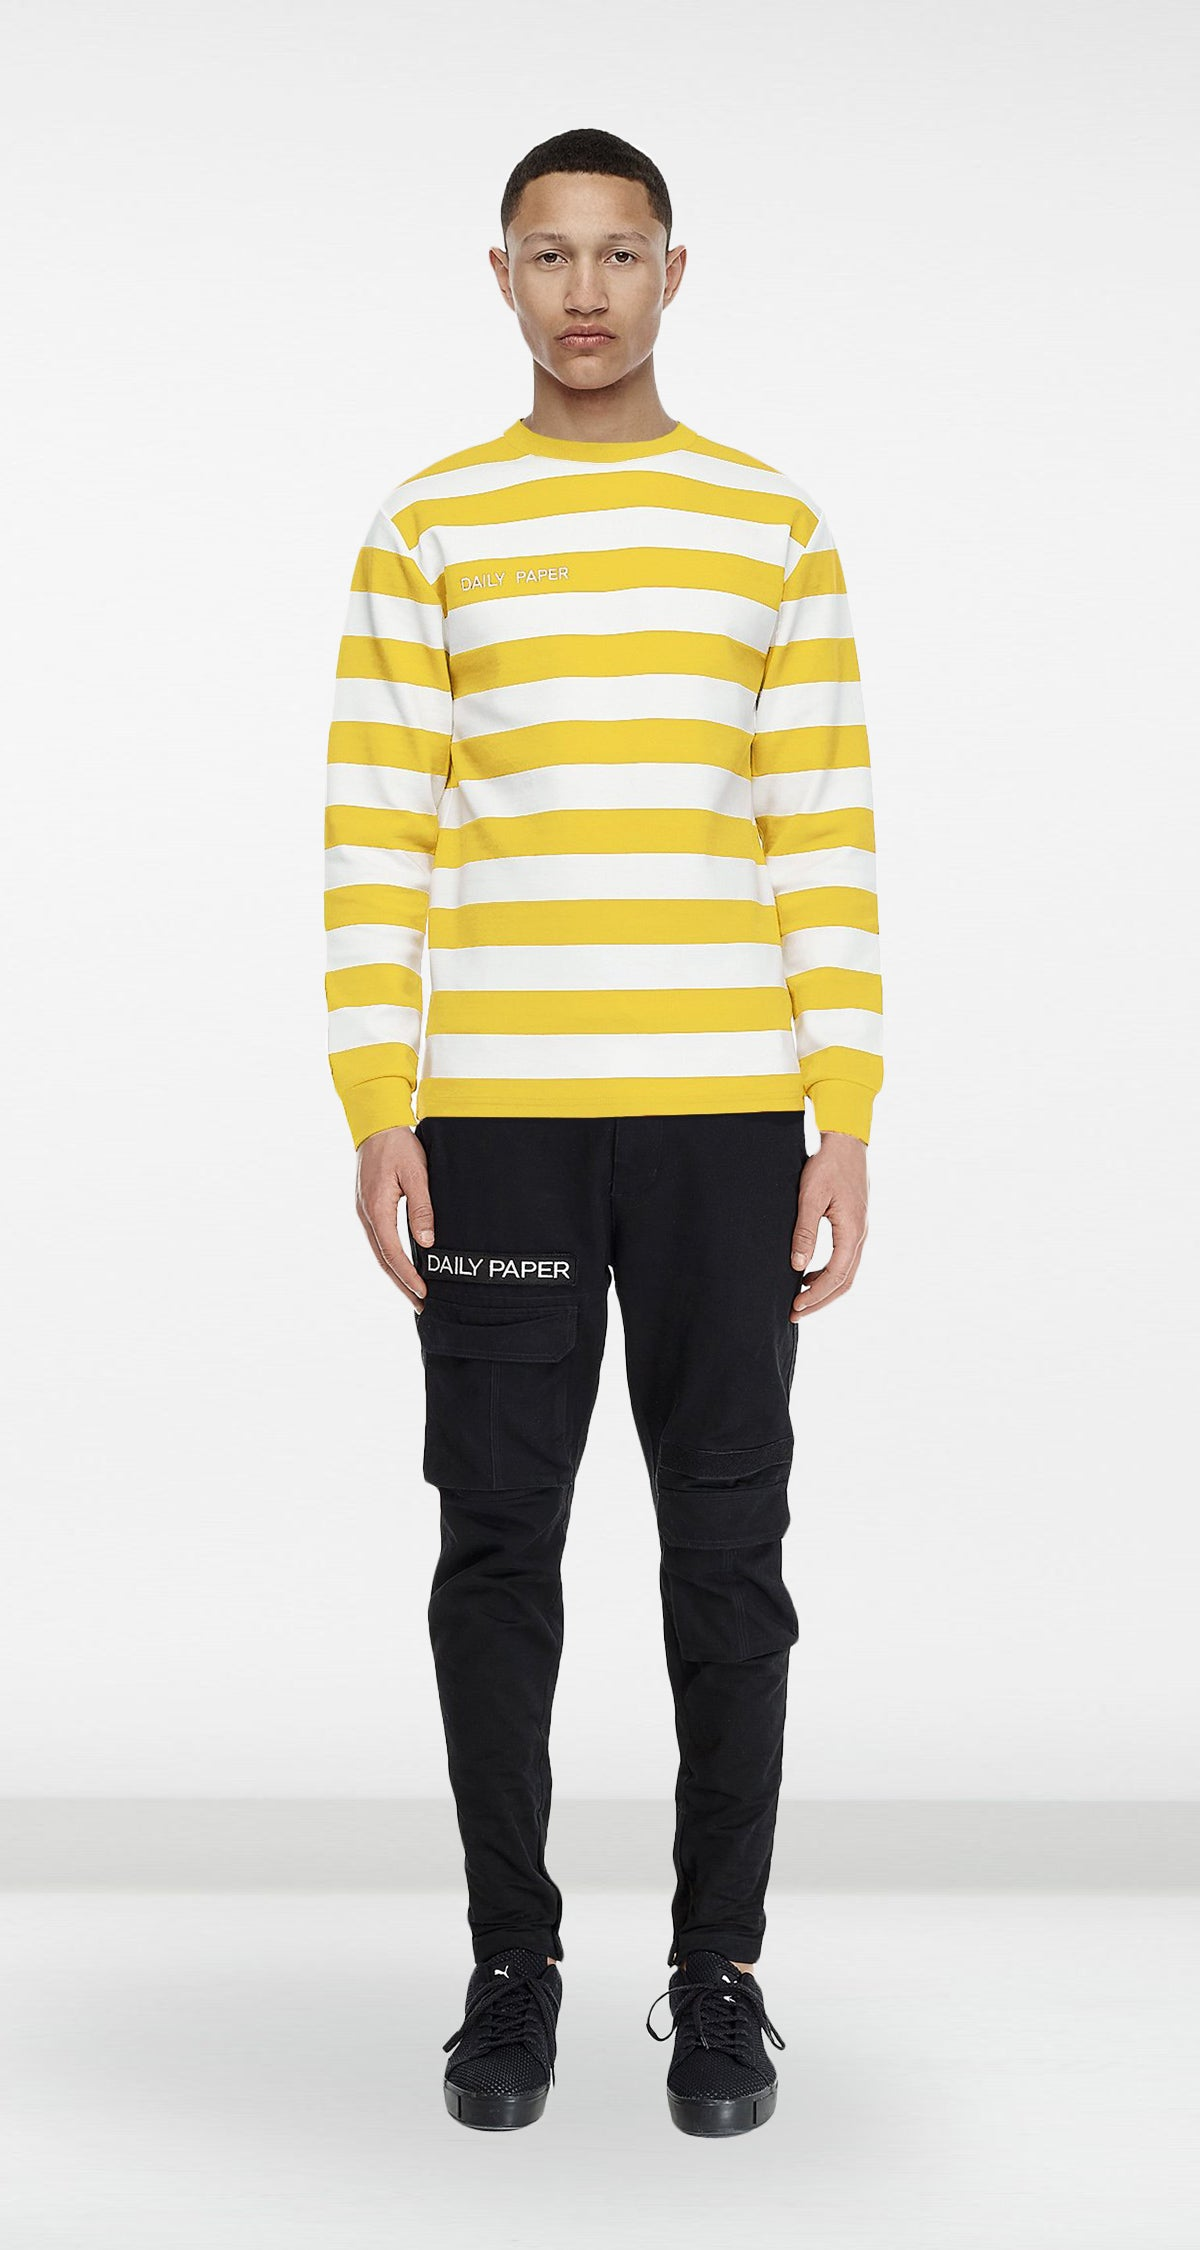 Daily Paper - Yellow Striped Longsleeve Men